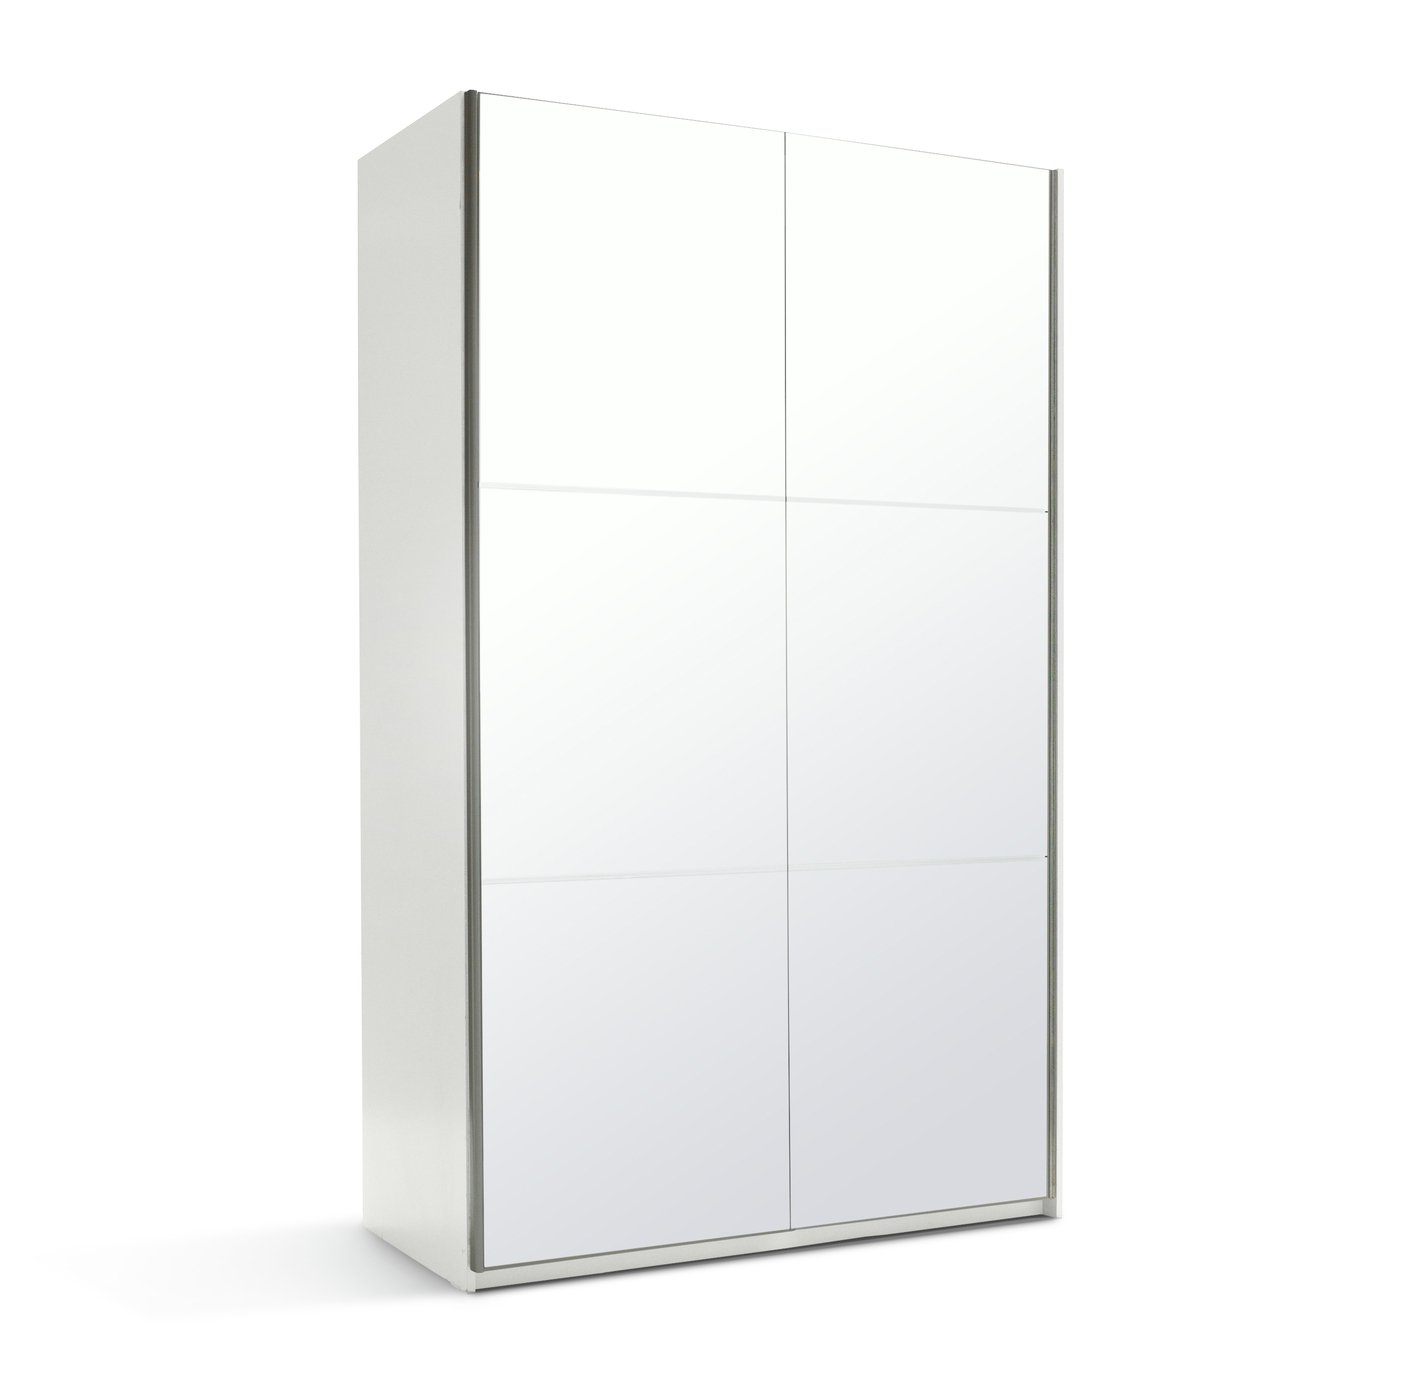 Argos Home Holsted Mirrored Small Wardrobe - White